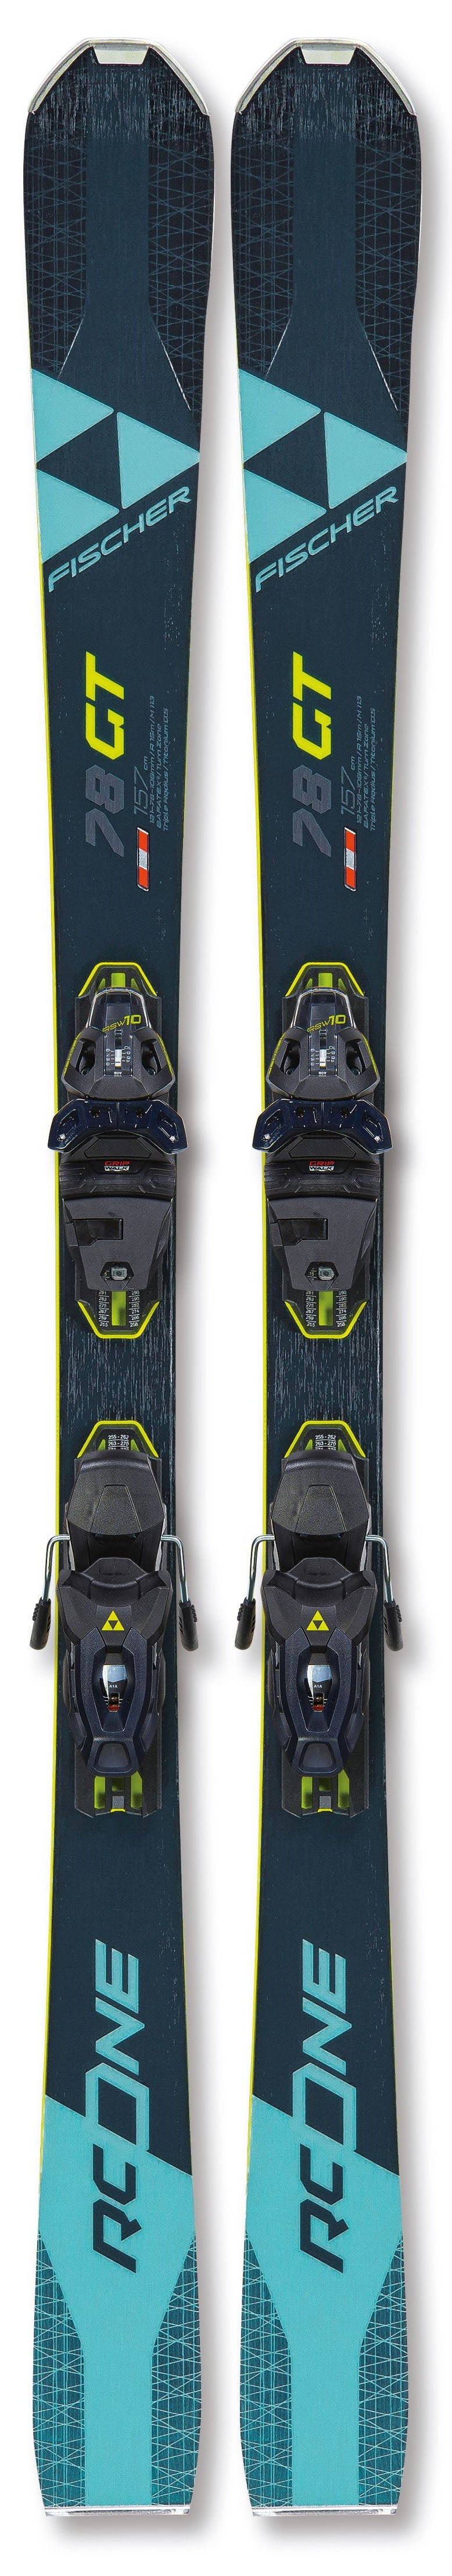 Fischer RC One 78 GT WS Skis 2021 w/bindings